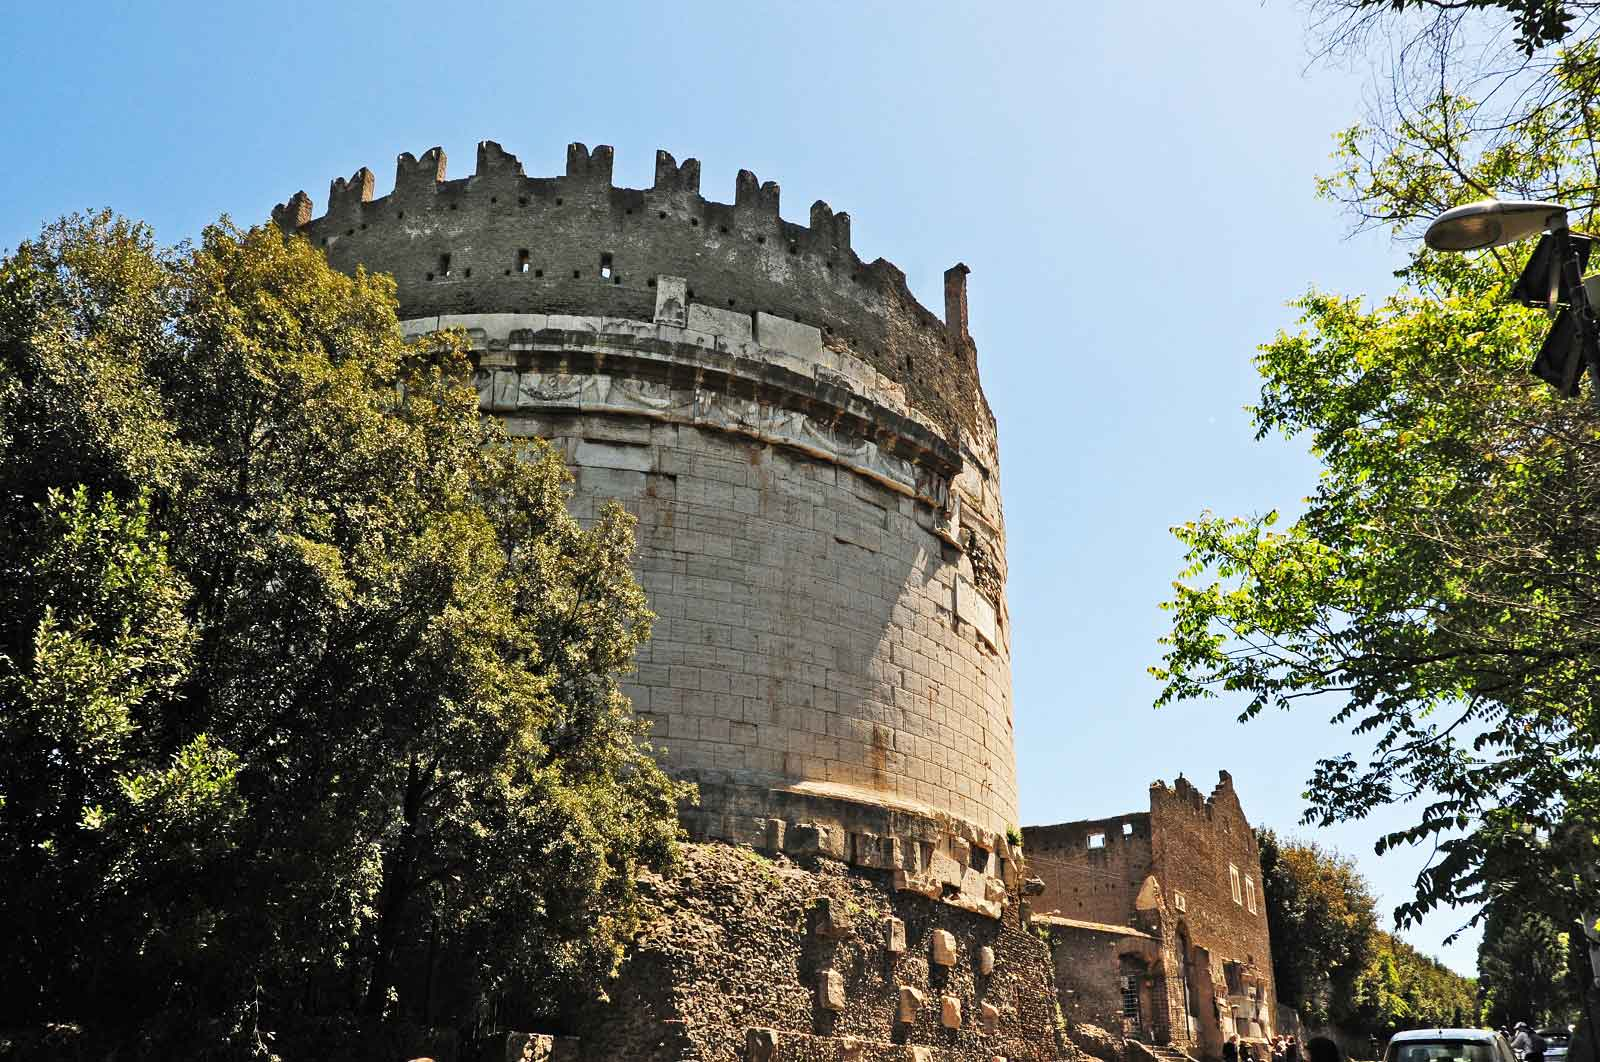 Day trip in Rome - Appian Way and Claudian Aqueduct tour